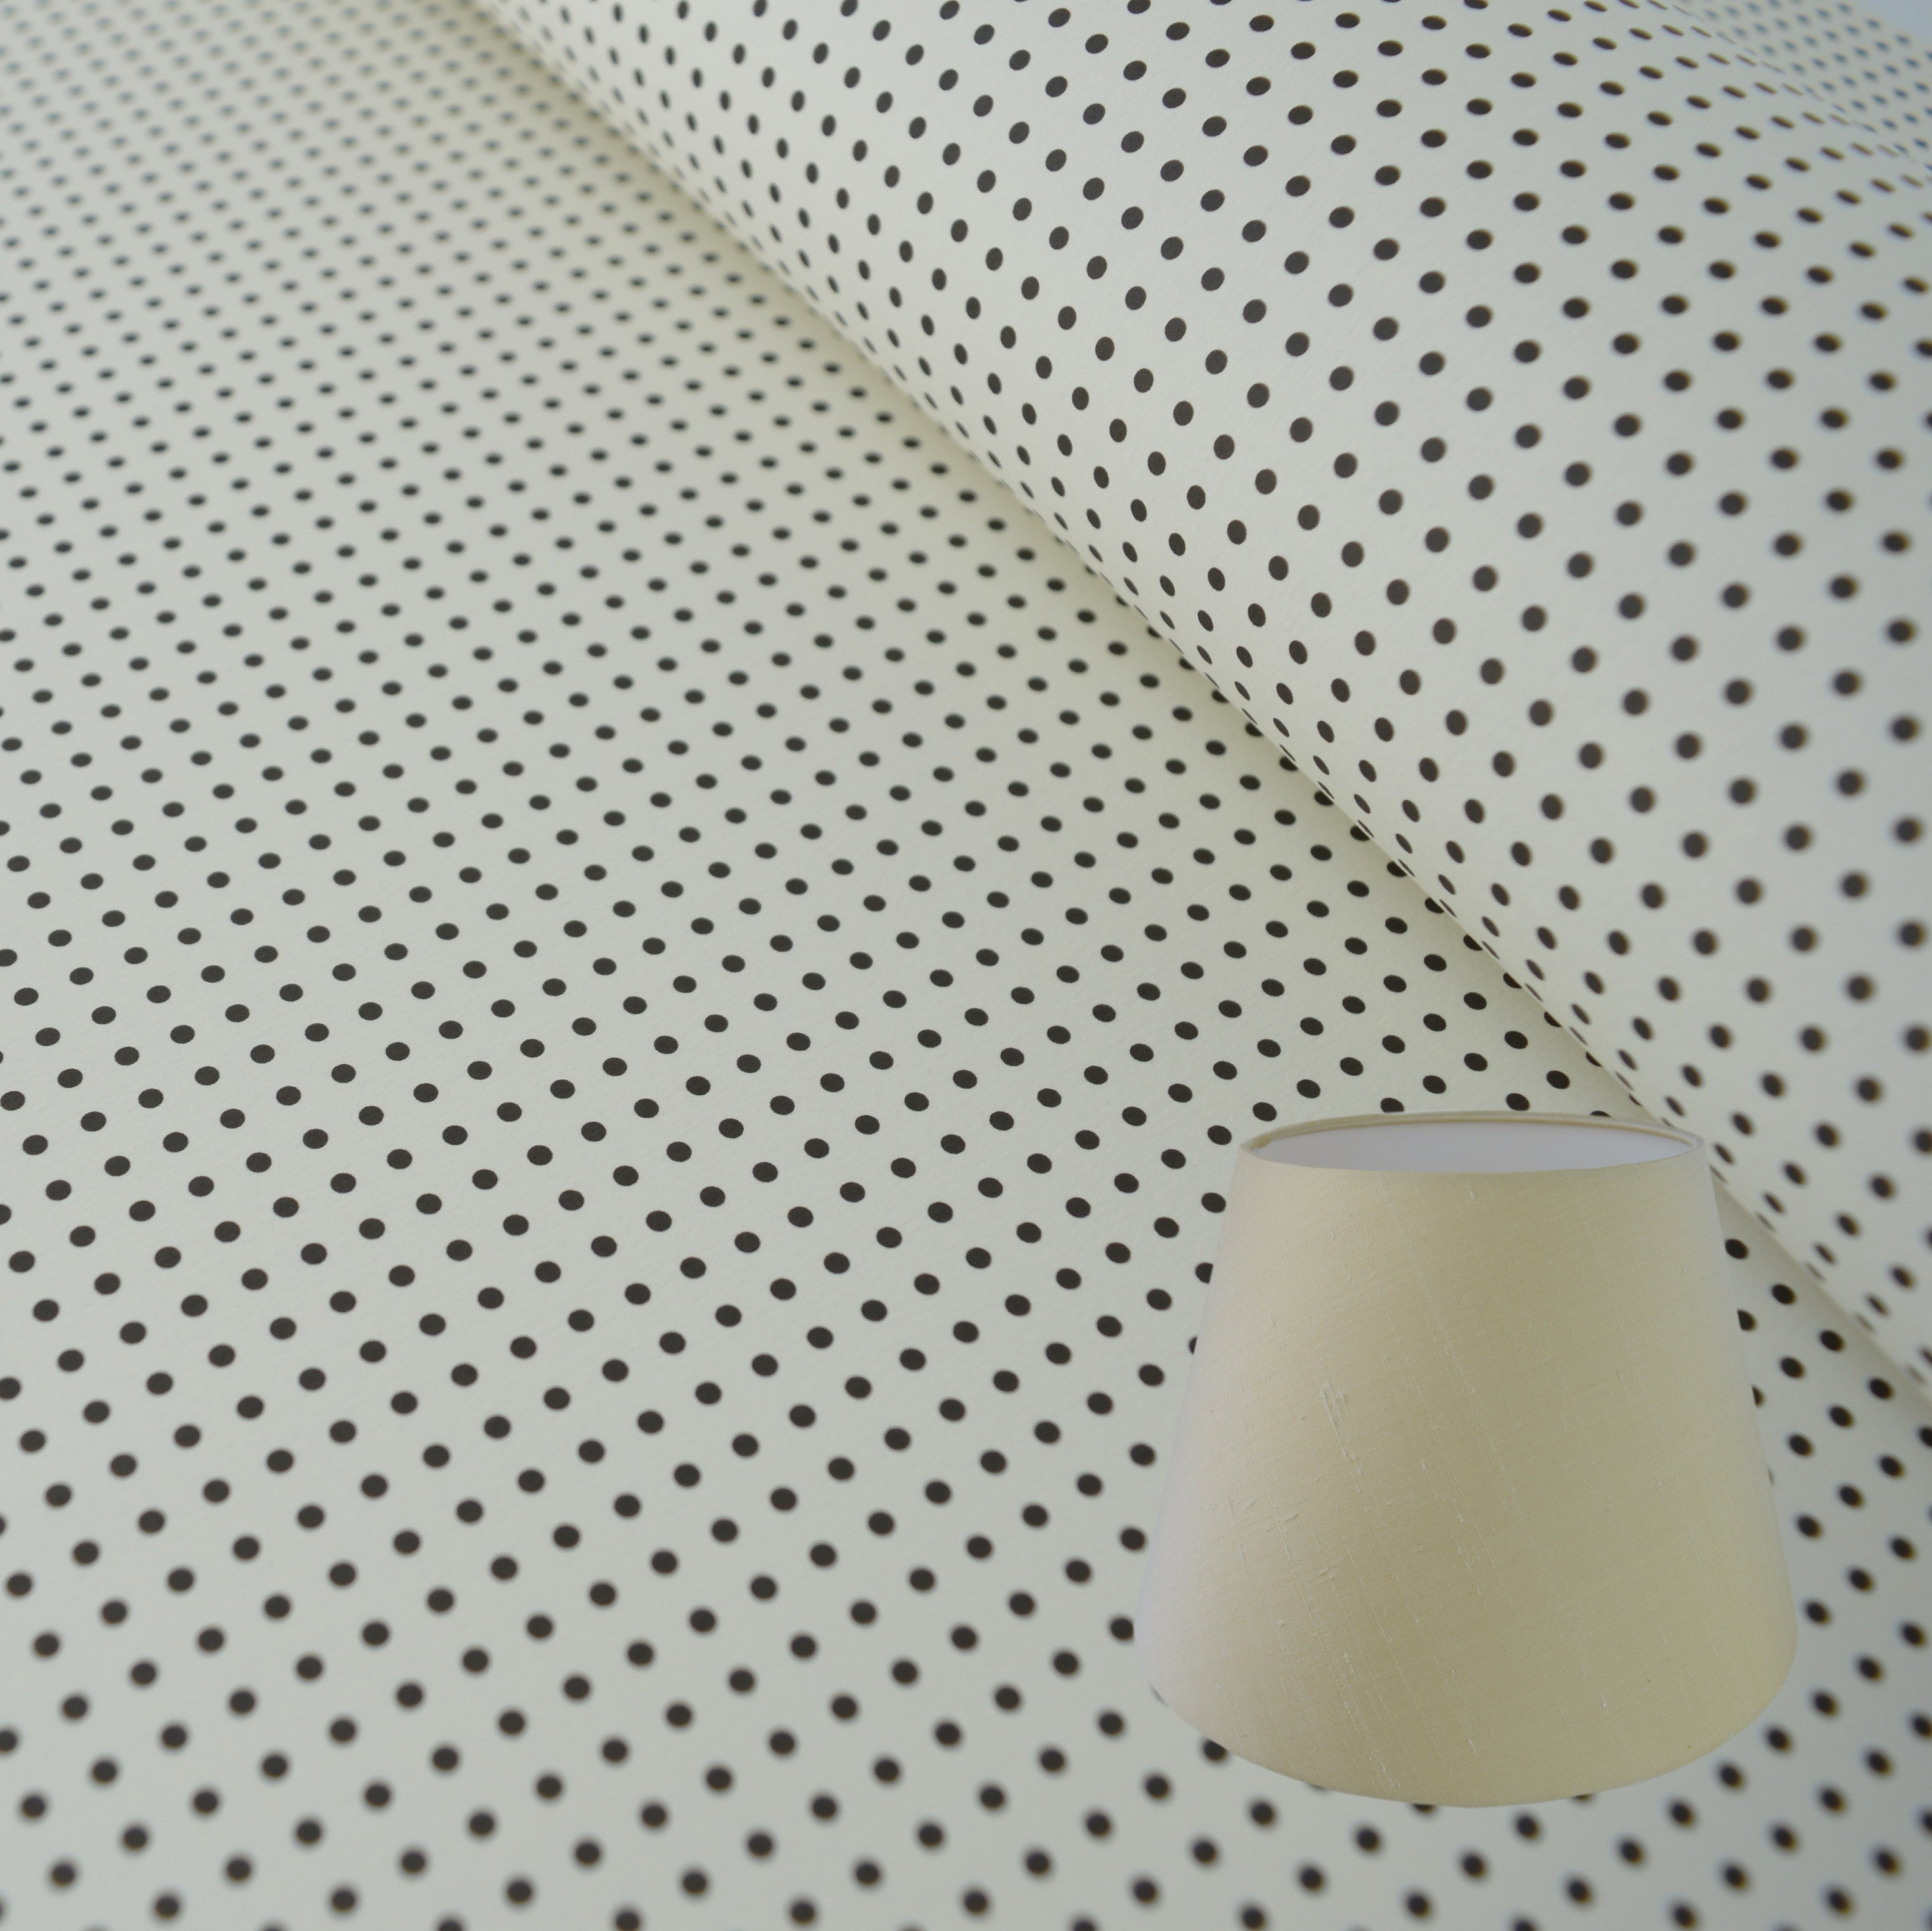 Munro and Kerr black and white monochrome printed spot paper for a lampshade